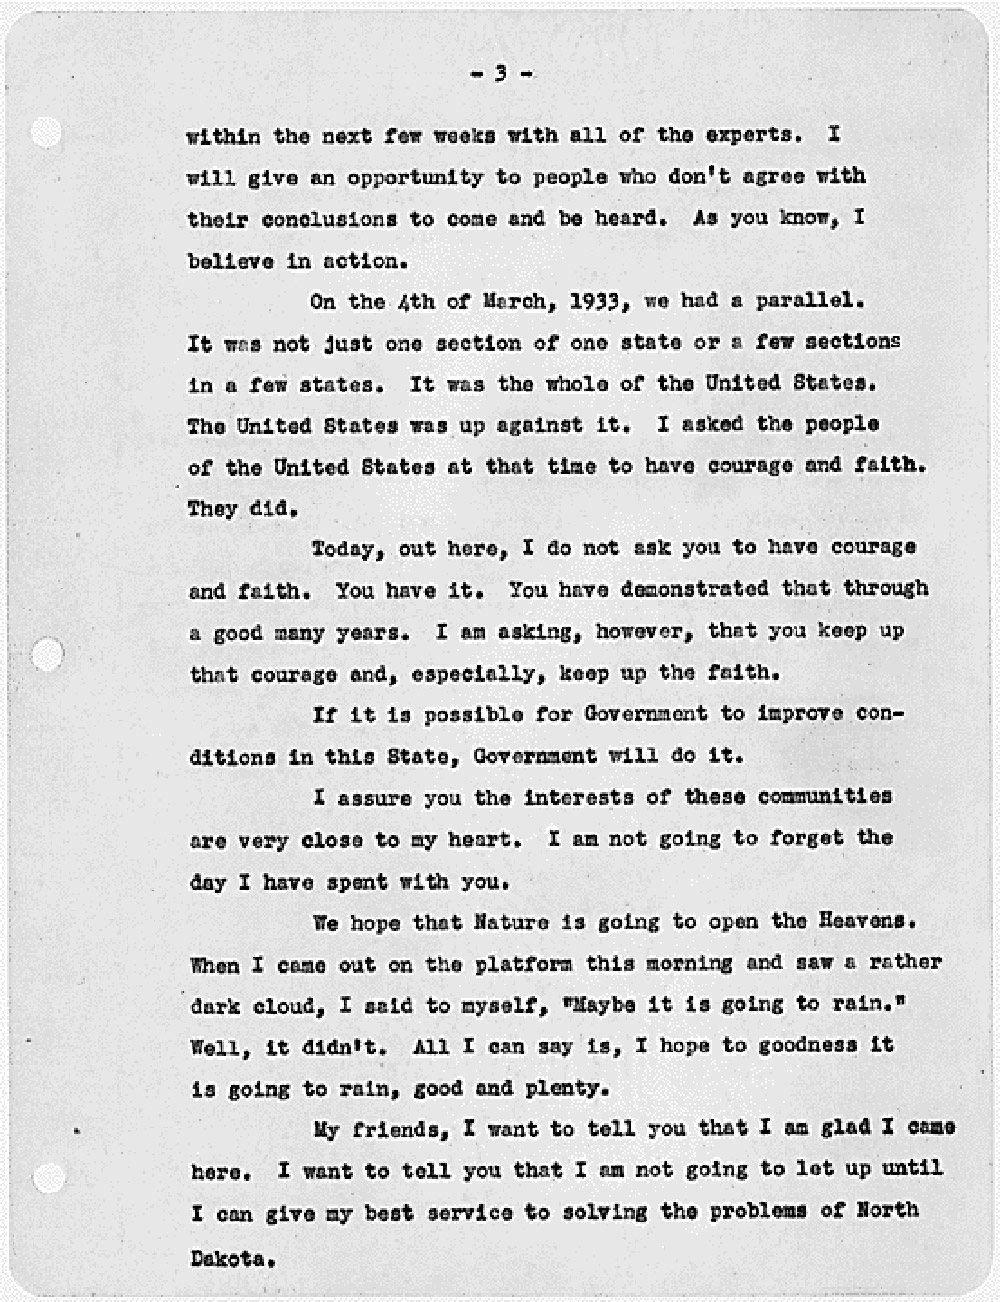 President Roosevelt made several trips to North Dakota during the Great Depression. In this speech to people at Devils Lake, he offered no solutions to the problems of drought and depression. He tells them that it is not likely that the federal government will build a dam on the Missouri River to provide irrigation waters. However, Roosevelt offered comfort and understanding.